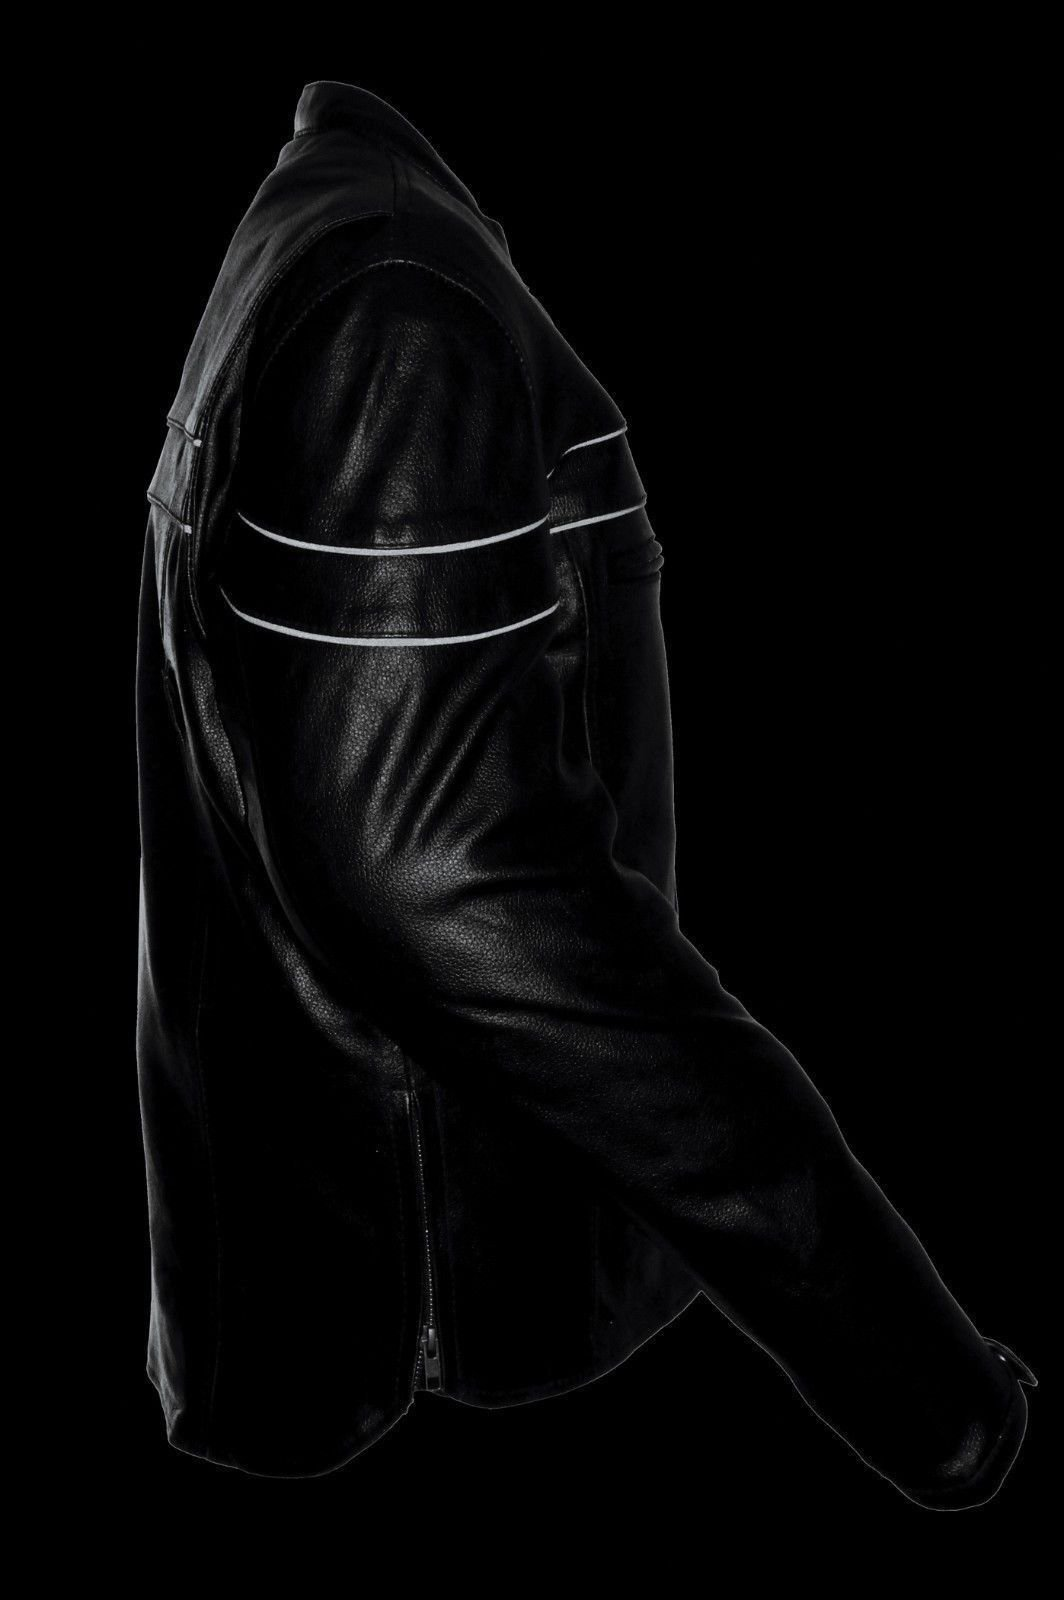 Draem Mens Motorcycle Blk Reflective Piping Cow Leather Tall Jacket Extra 3'' Longer (3XL Regular)